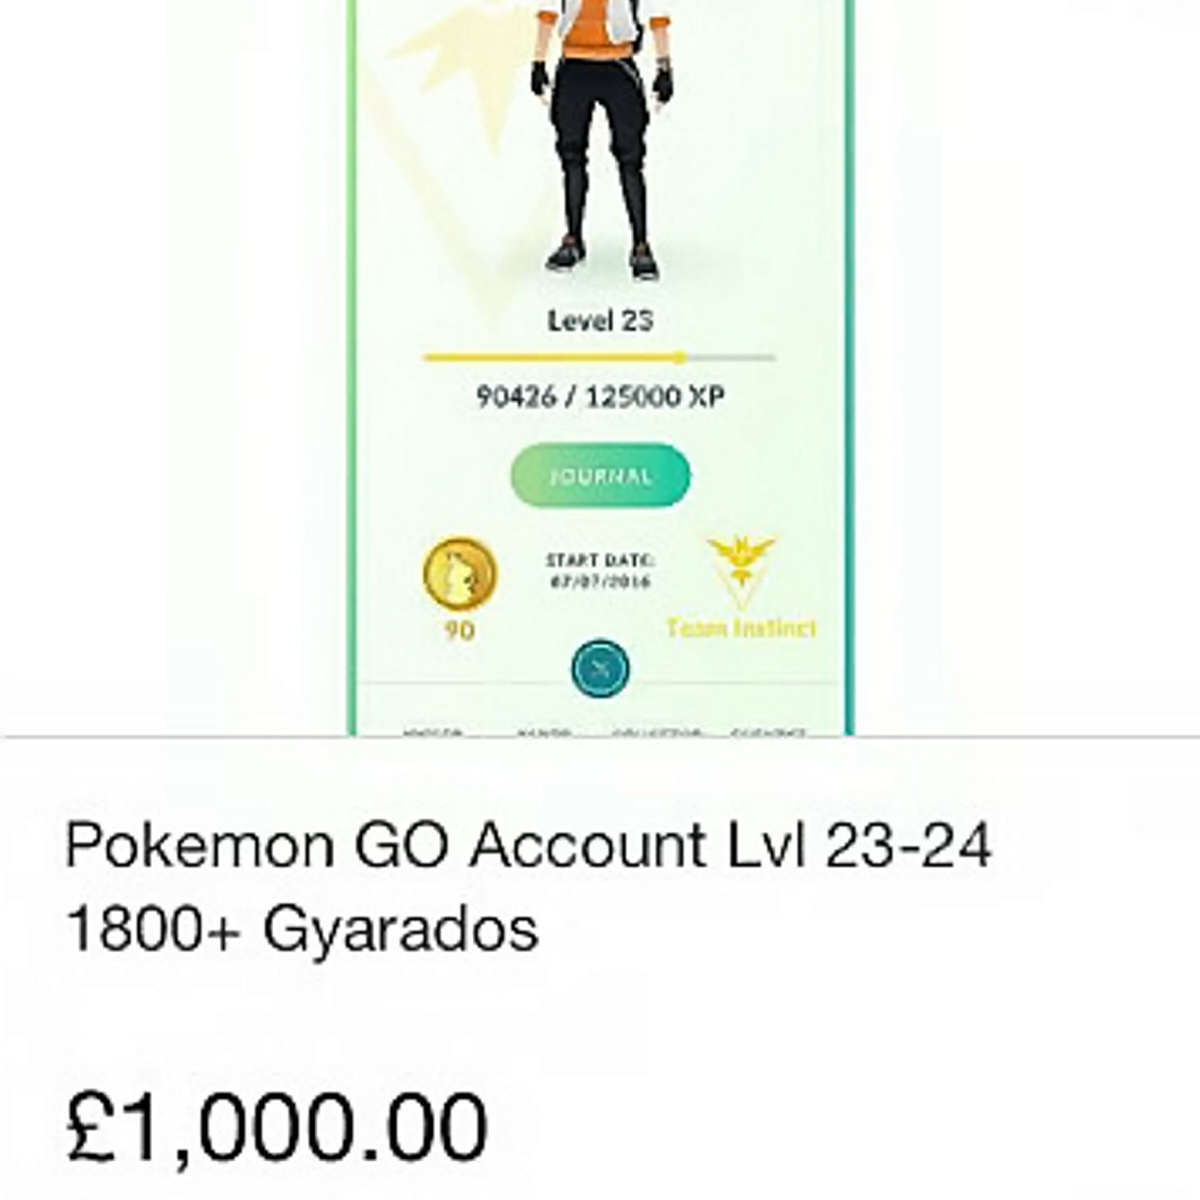 SWNS POKEMAN PEDRAZA 05 Woman Quits Job To Make Living Playing Pokemon GO, Heres How